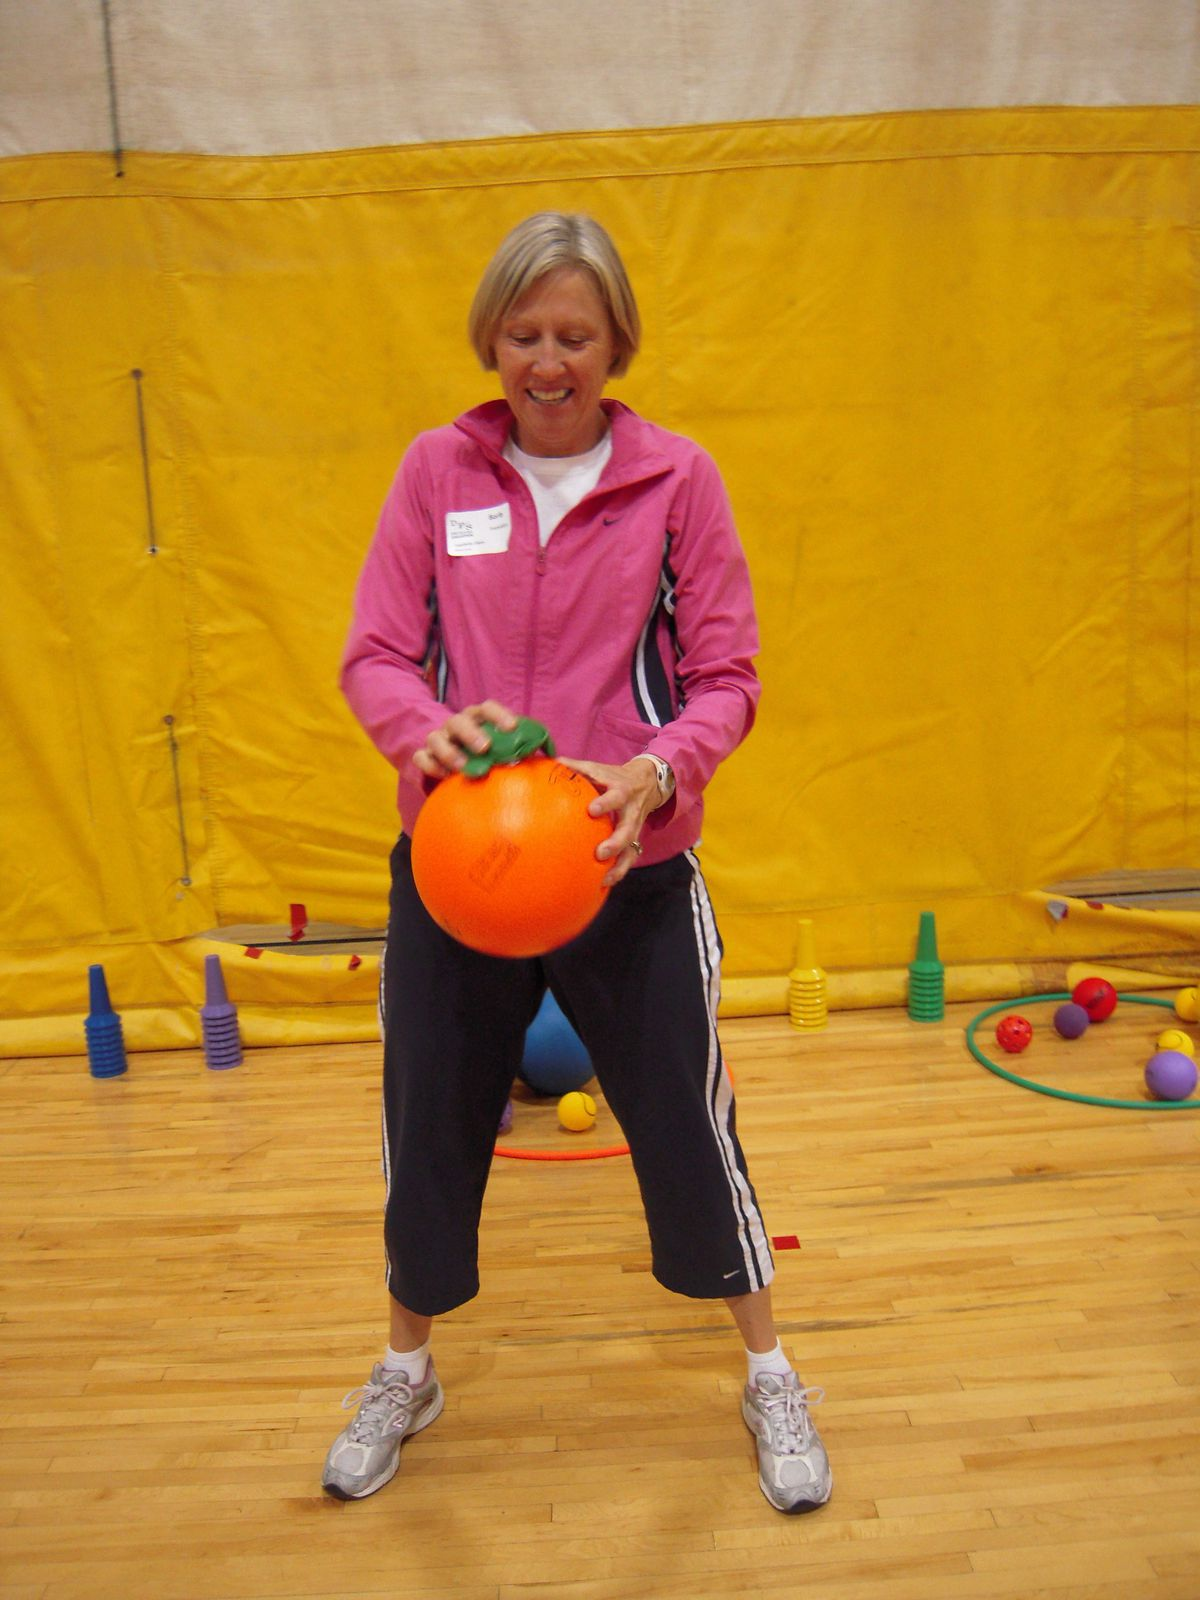 Barb Francklyn, P.E. teacher at Foothills Elementary in Colorado Springs, tries bouncing a ball with a frog-shaped beanbag atop it.